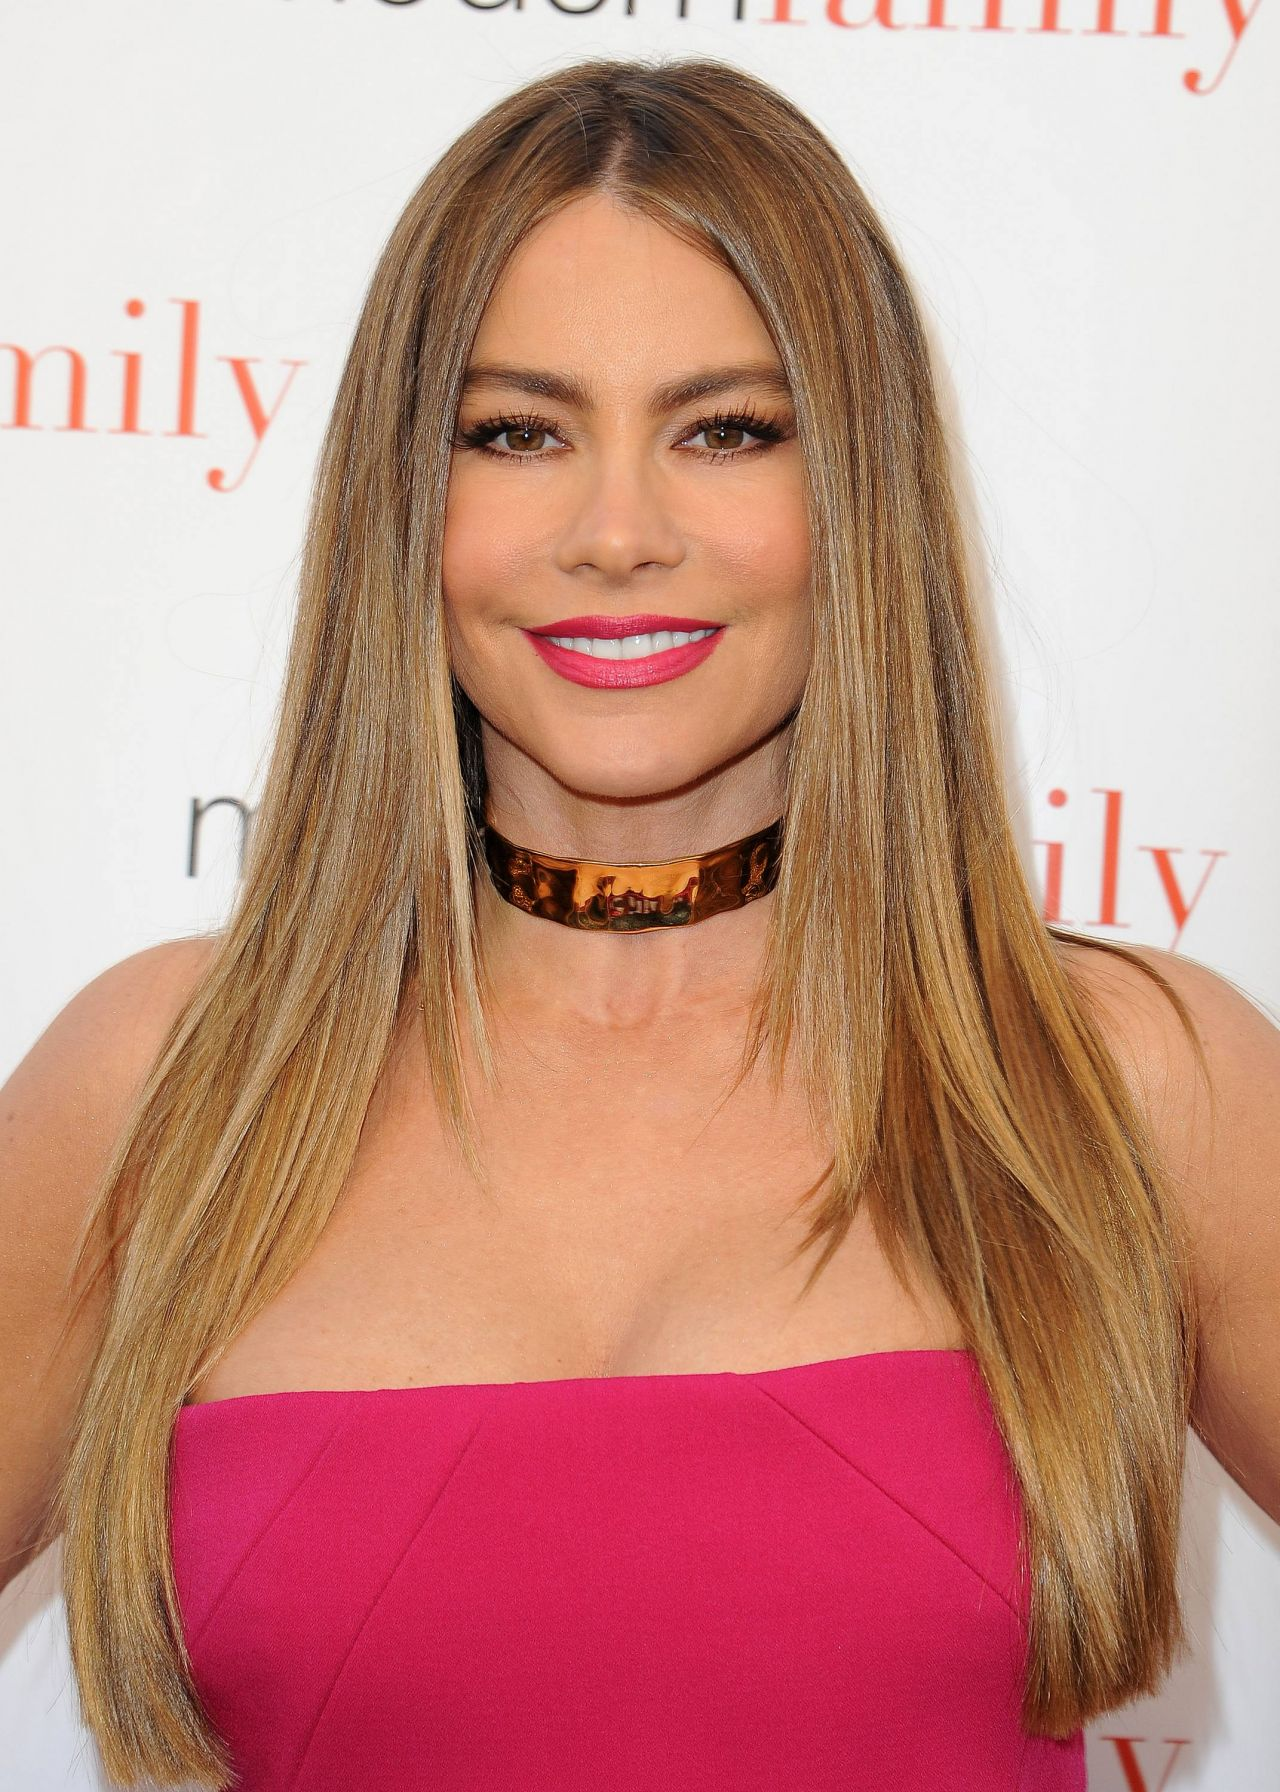 Sofia Vergara Modern Family Atas Event In Los Angeles 5